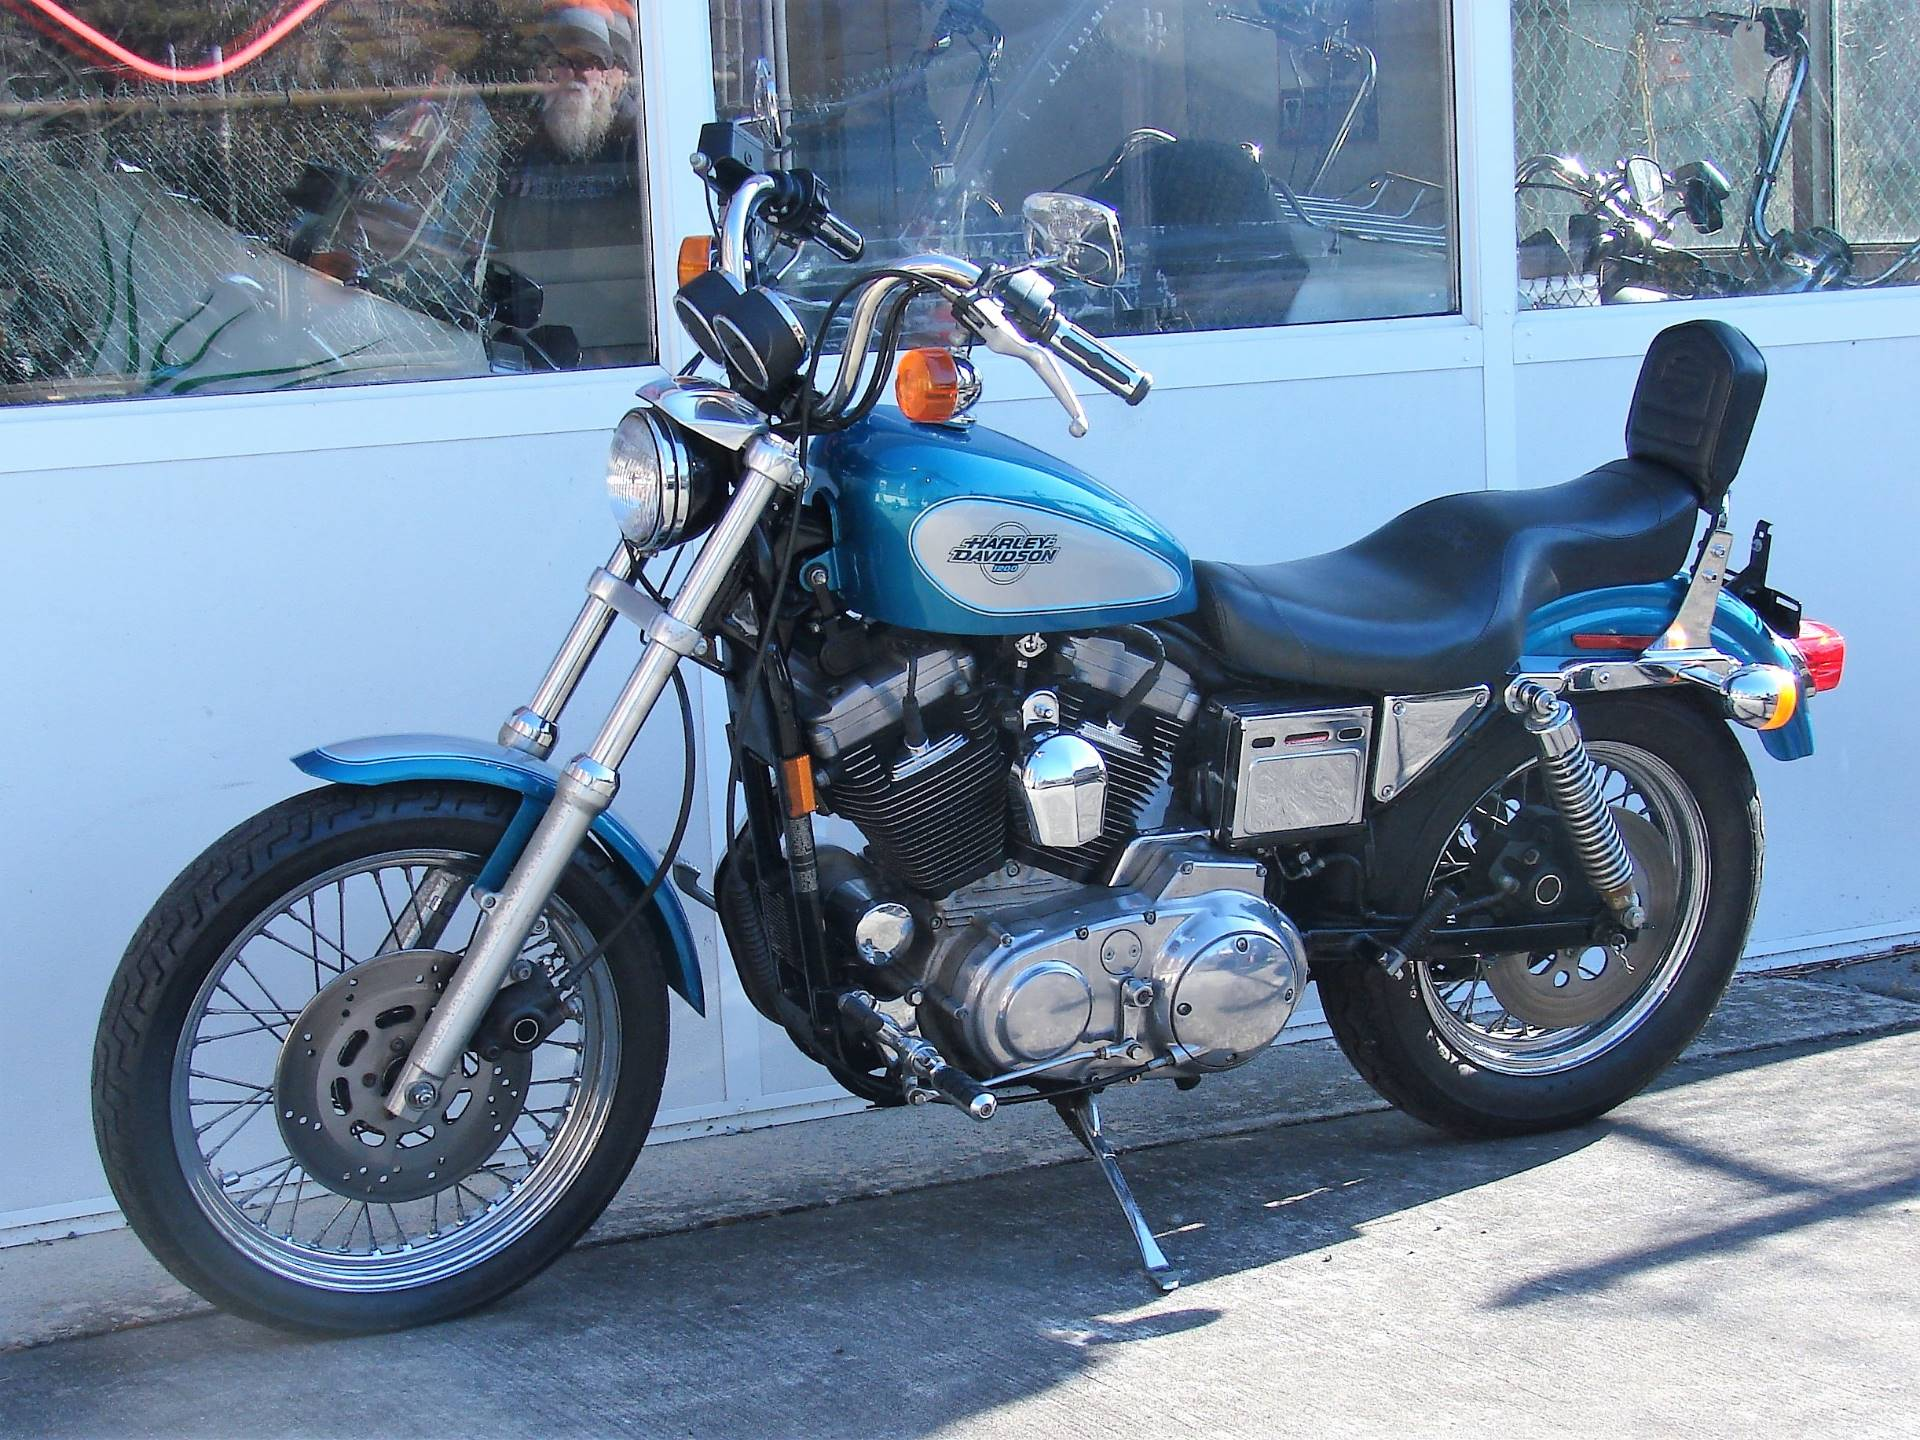 1995 Harley-Davidson 1200 Sportster  (Teal Blue and Silver) in Williamstown, New Jersey - Photo 8